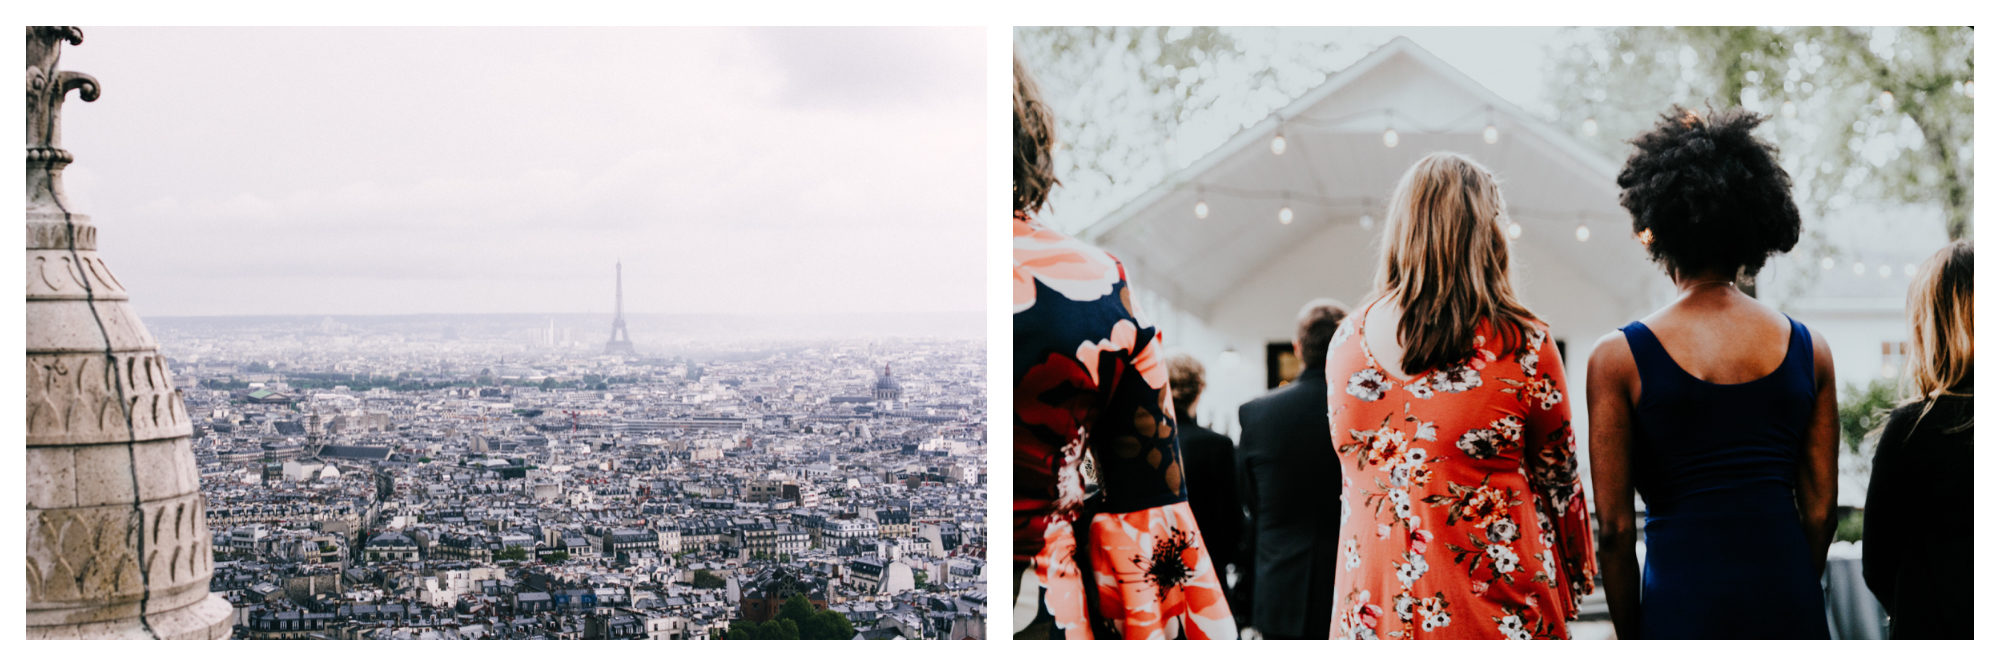 The view of Paris from the Sacré Coeur, with the Eiffel Tower in the background (left). A couple at a concert (right).